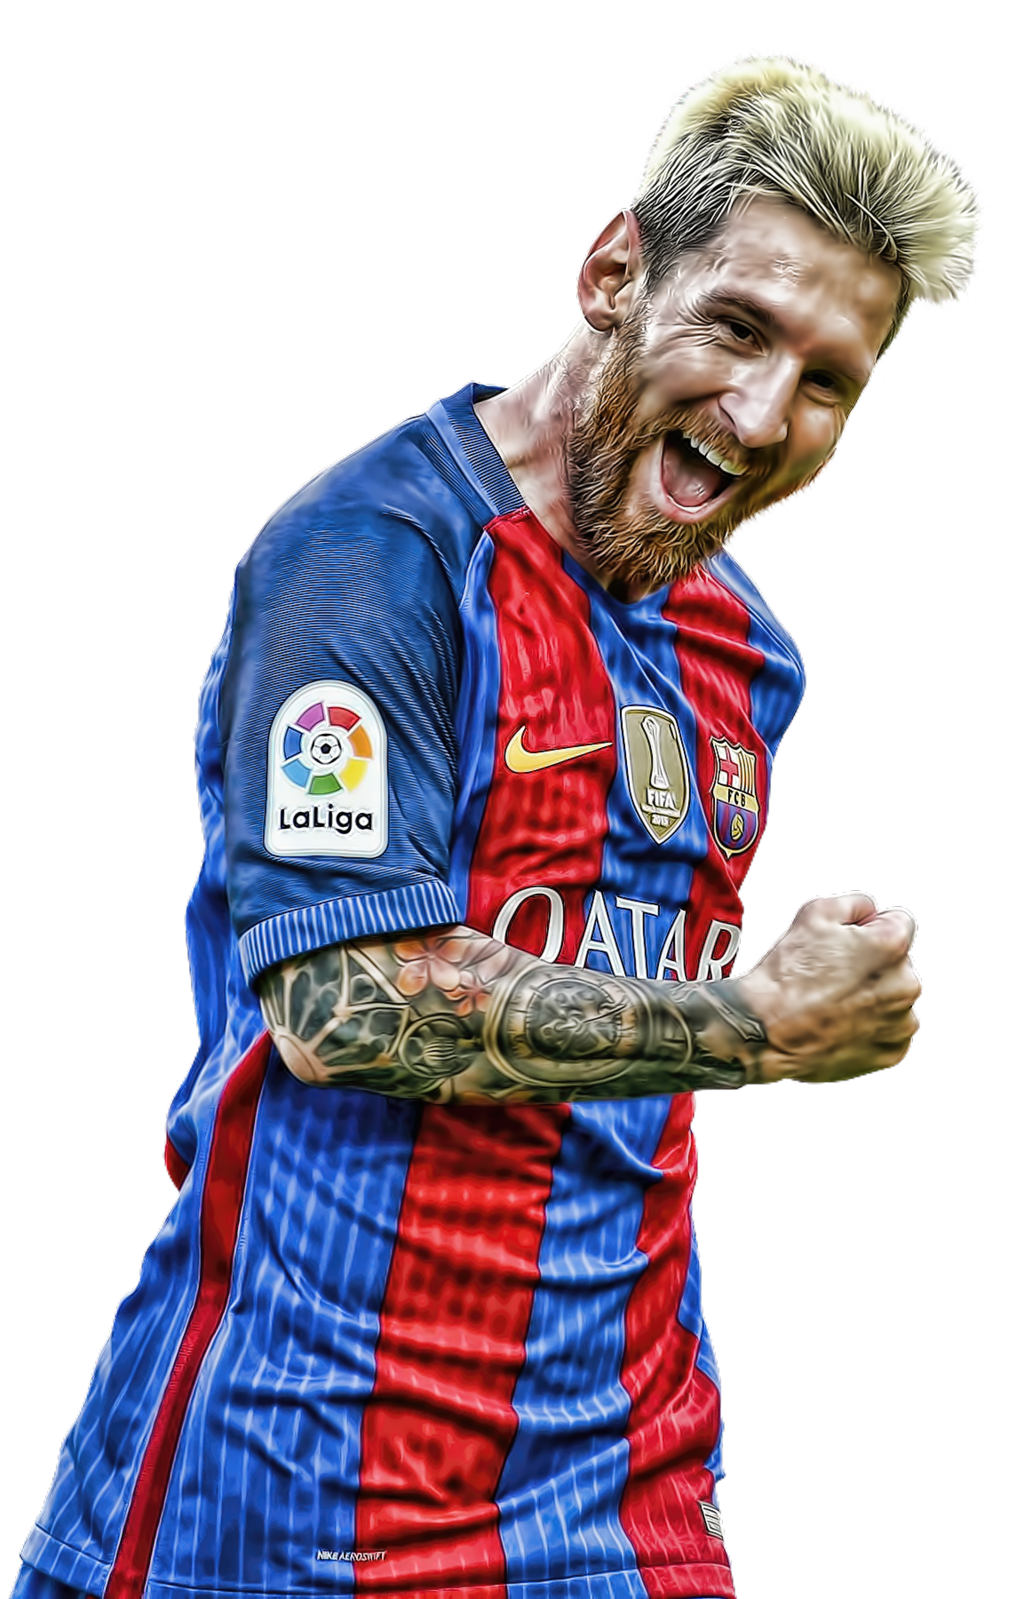 Lionel messi 2016 png. Topaz by beastieblake on